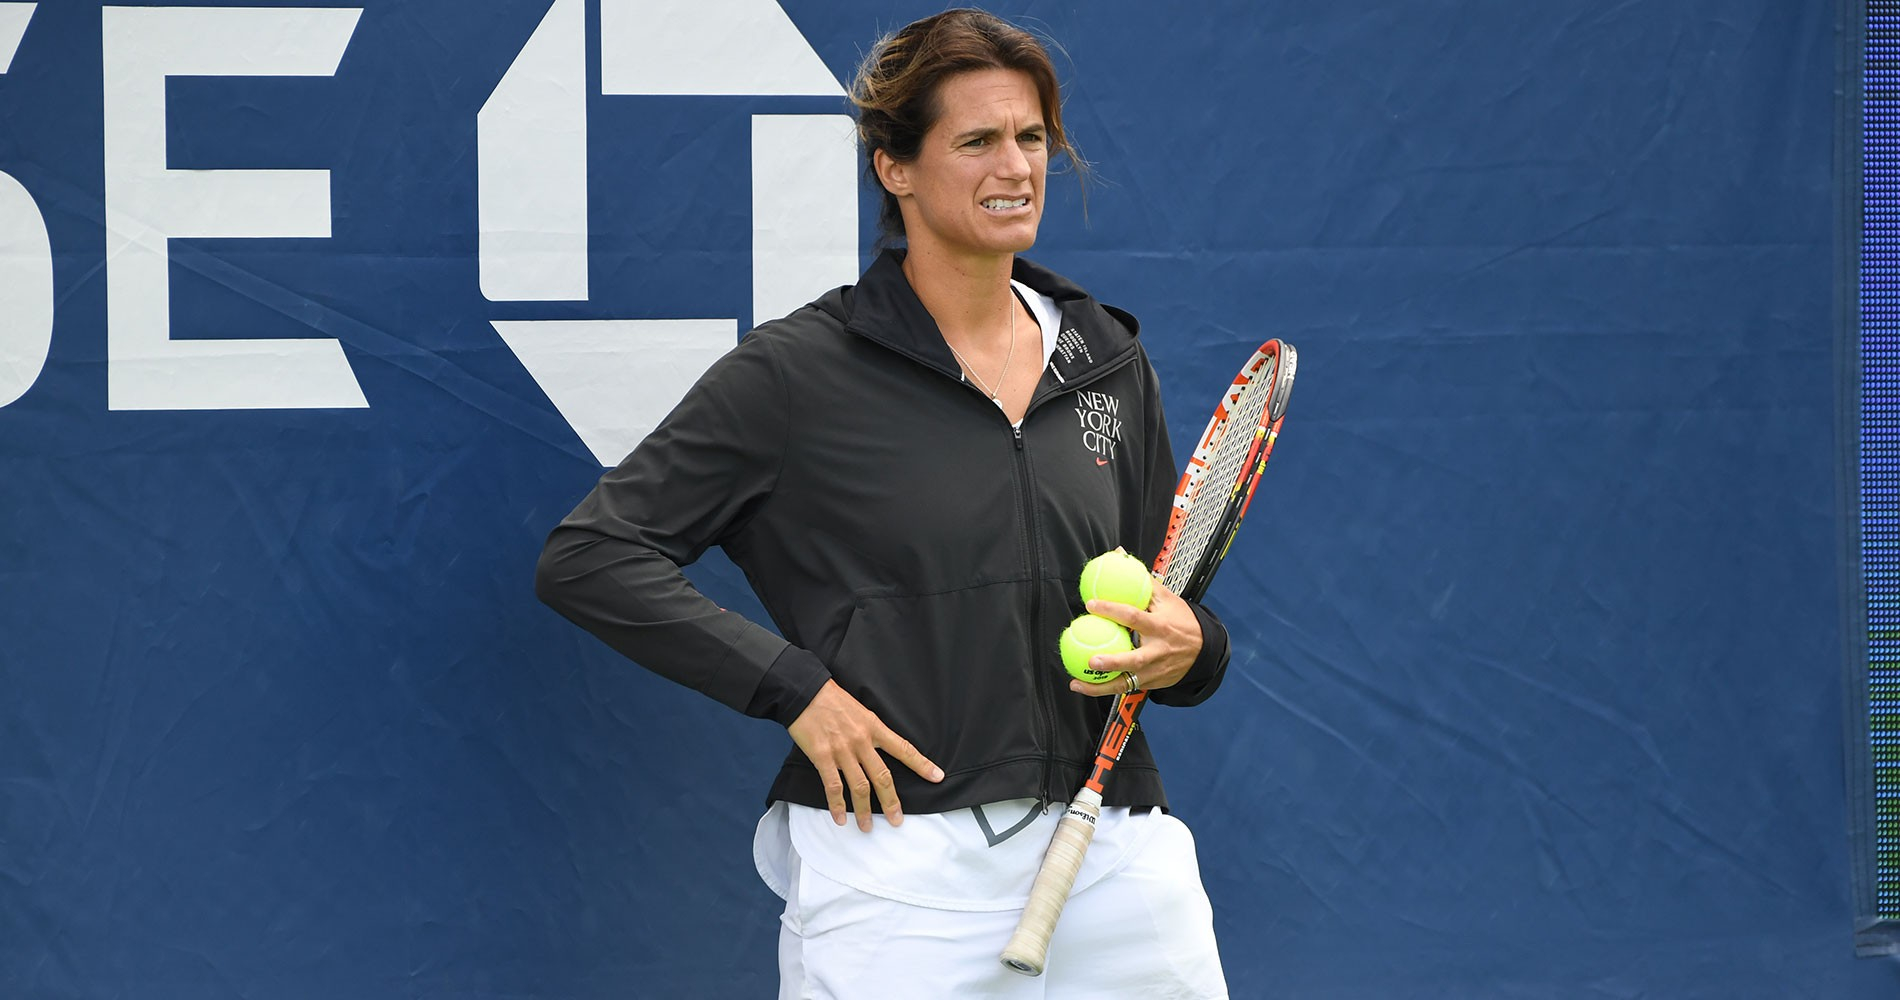 Amelie Mauresmo at US Open 2020